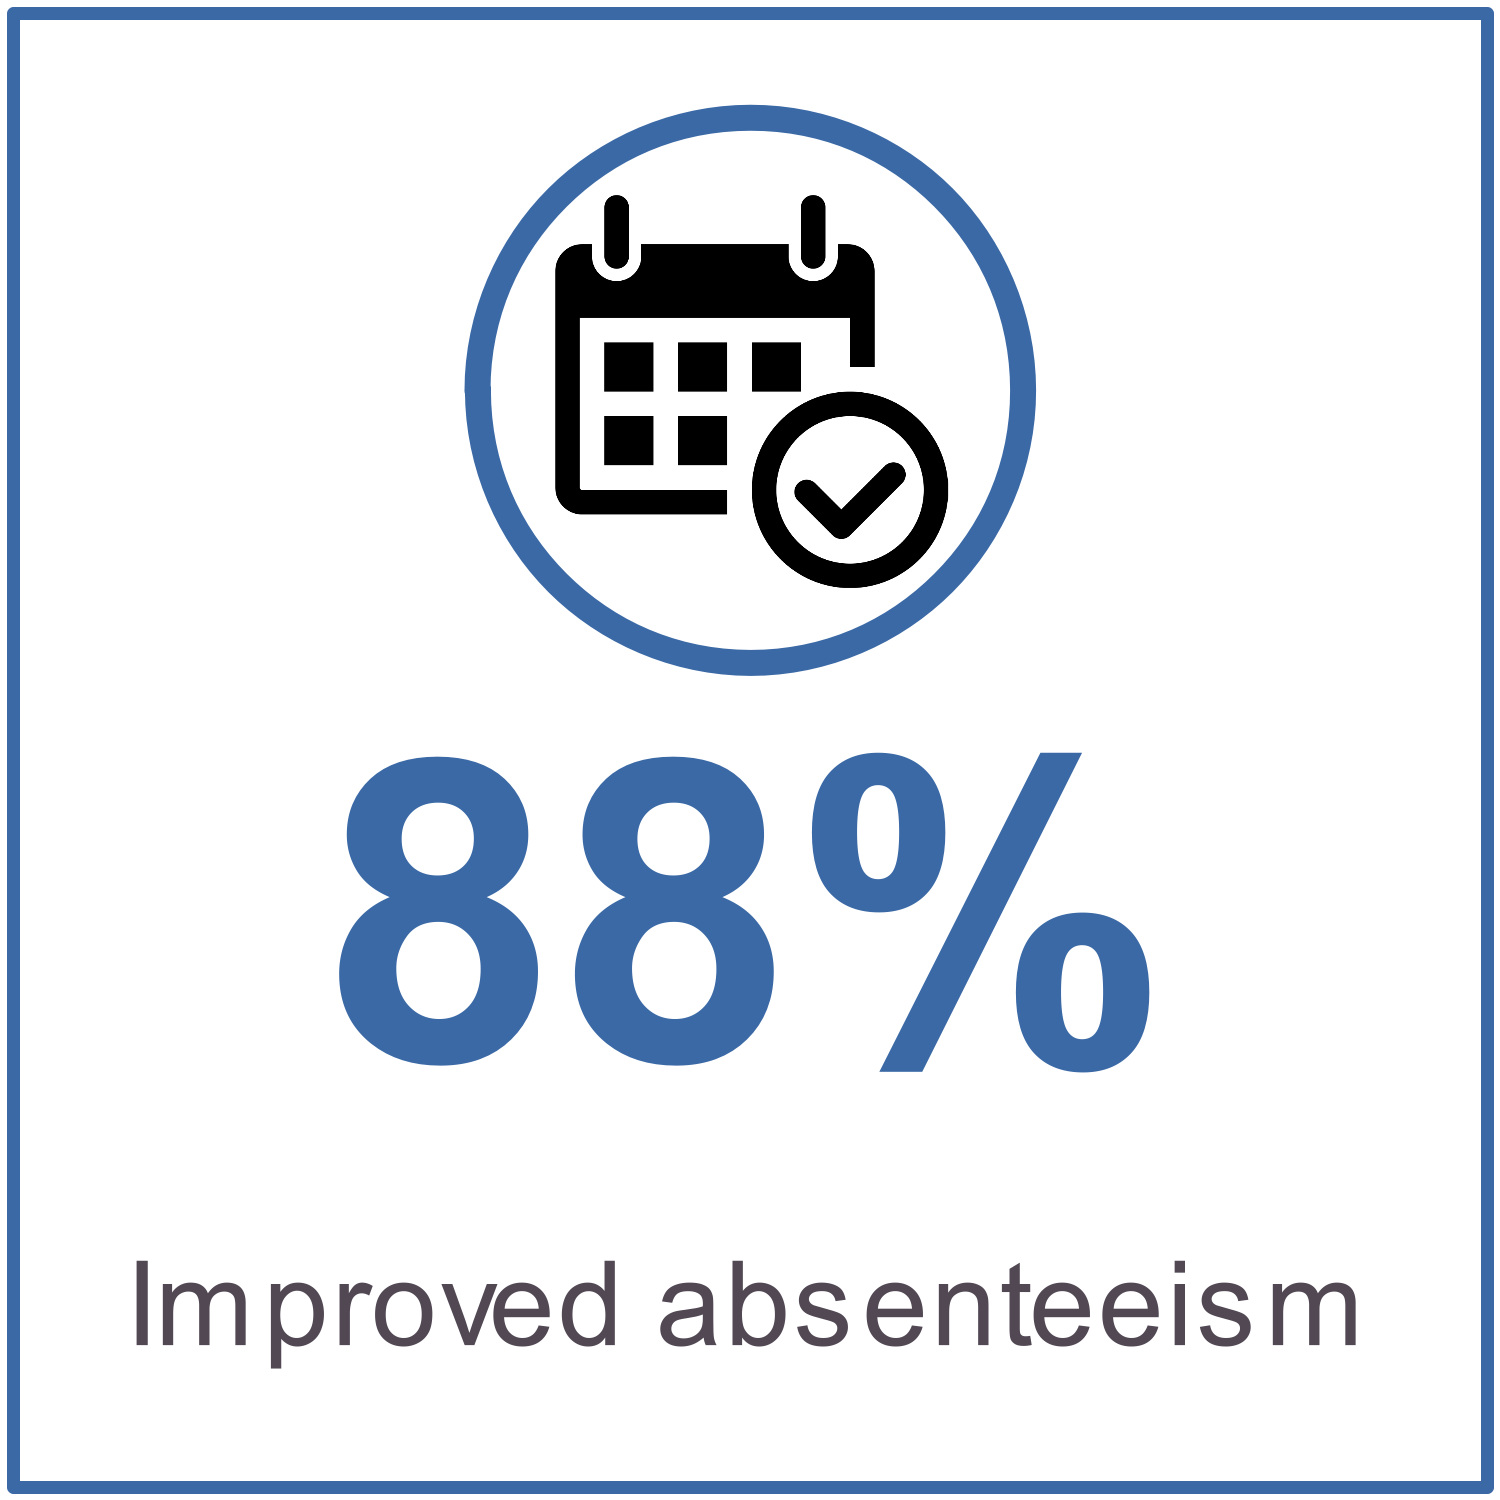 88% improved absenteeism